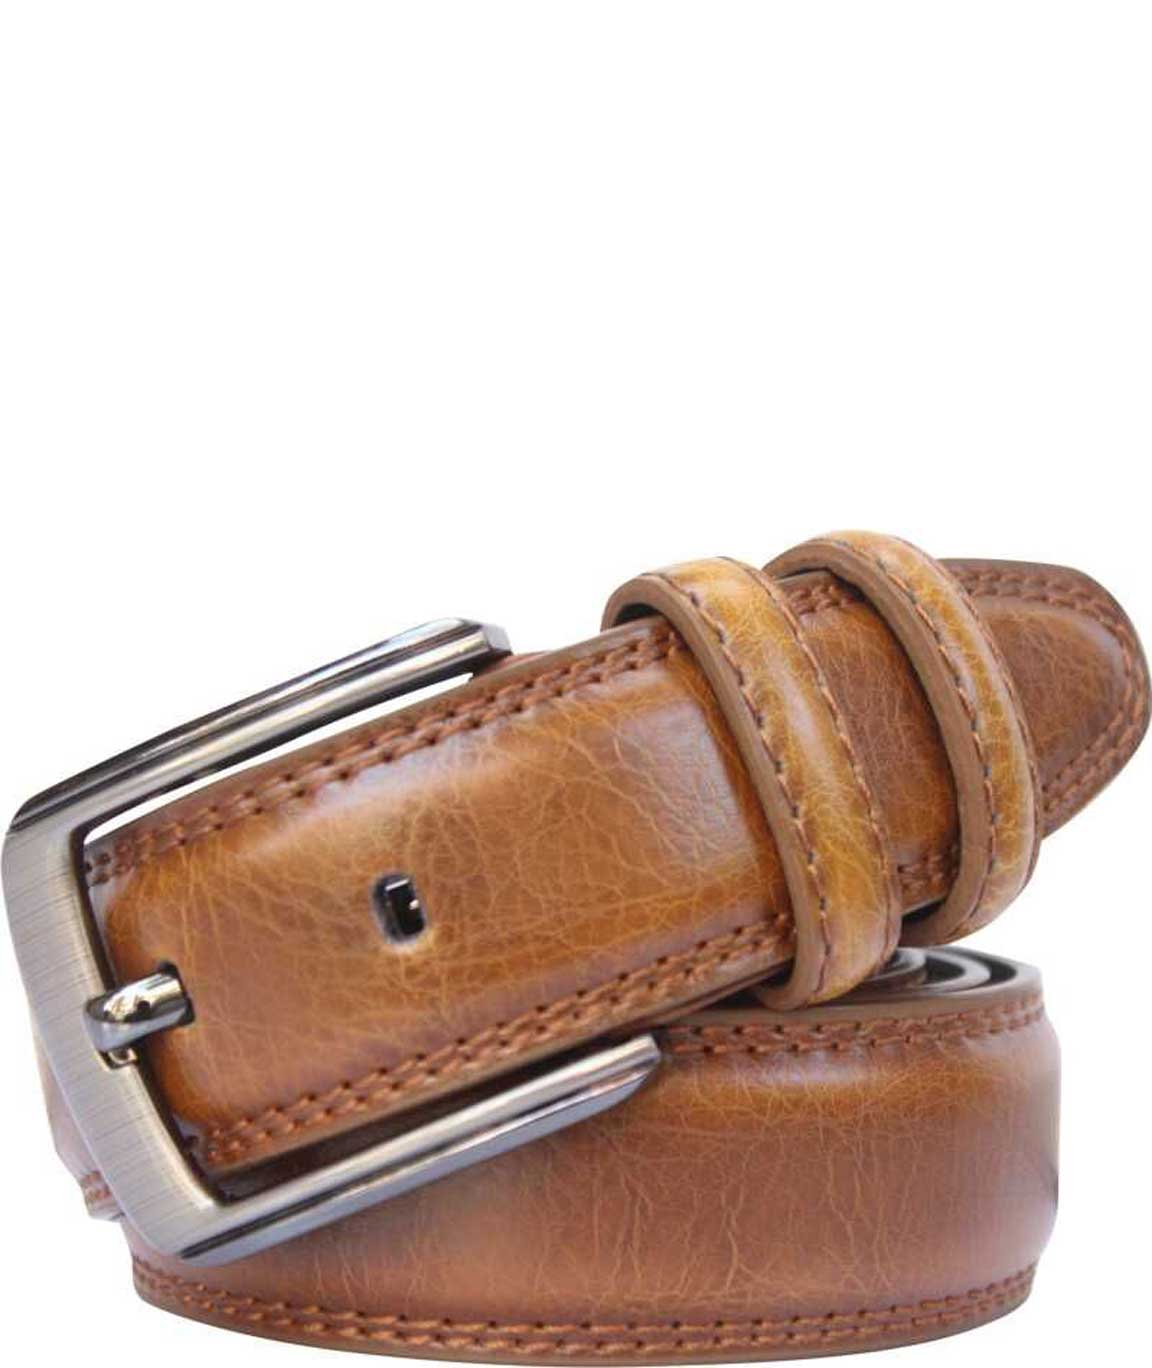 Winsome Deal Tan Leatherette Casual Belt For Men`s